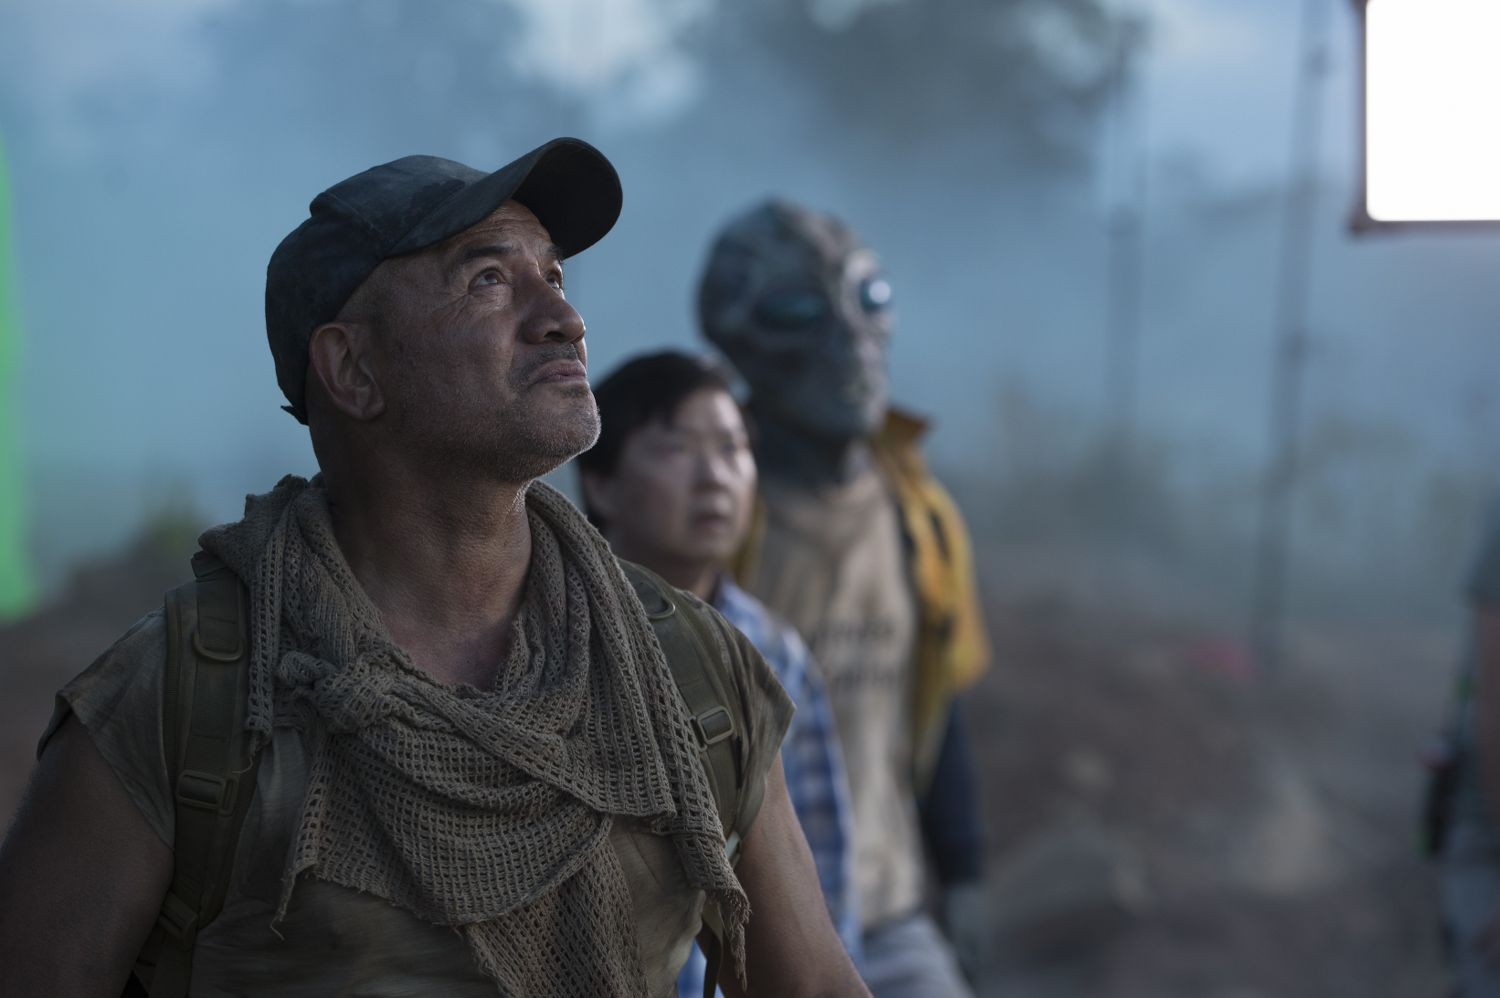 Temuera Morrison, Ken Jeong and Jason Isaacs in Occupation Rainfall